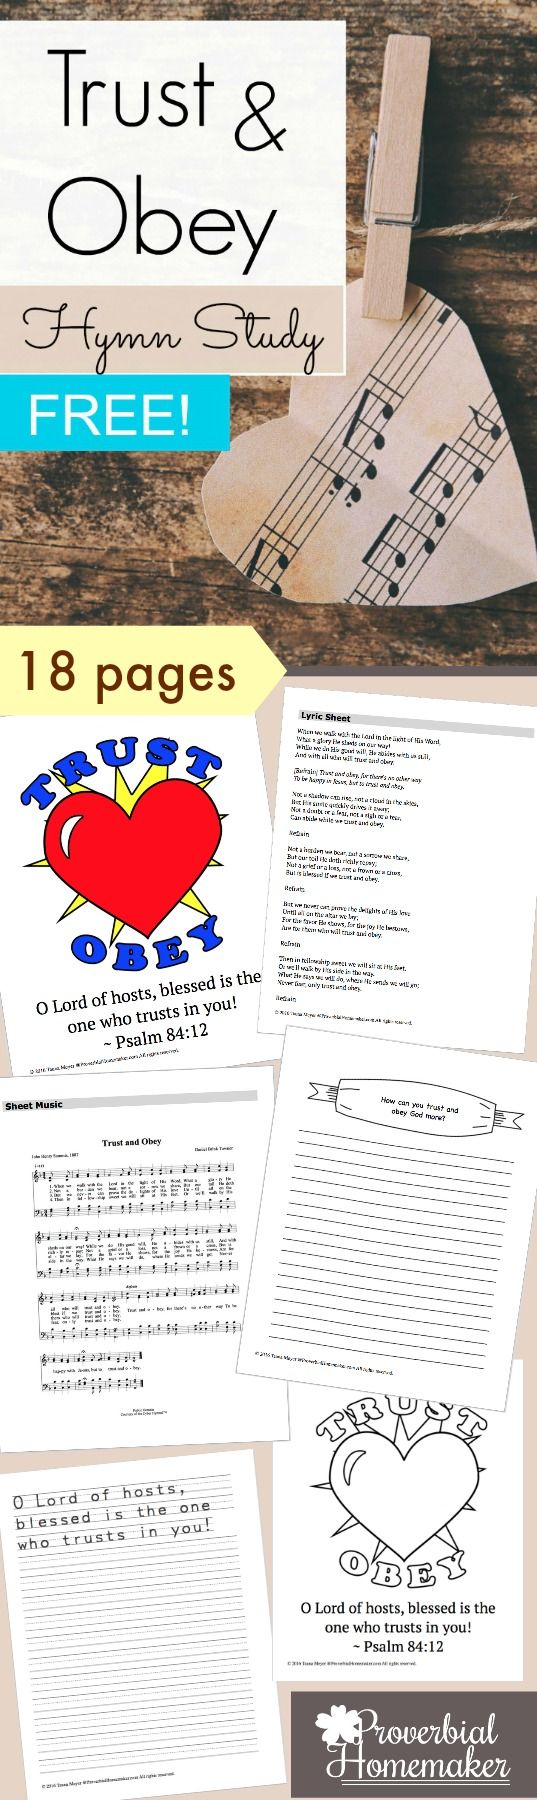 Trust and Obey Hymn Study (FREE!) LOVE this hymn. What a great one to teach the kids - learn how to trust God and obey Him. Would be wonderful for family worship or homeschooling, too.